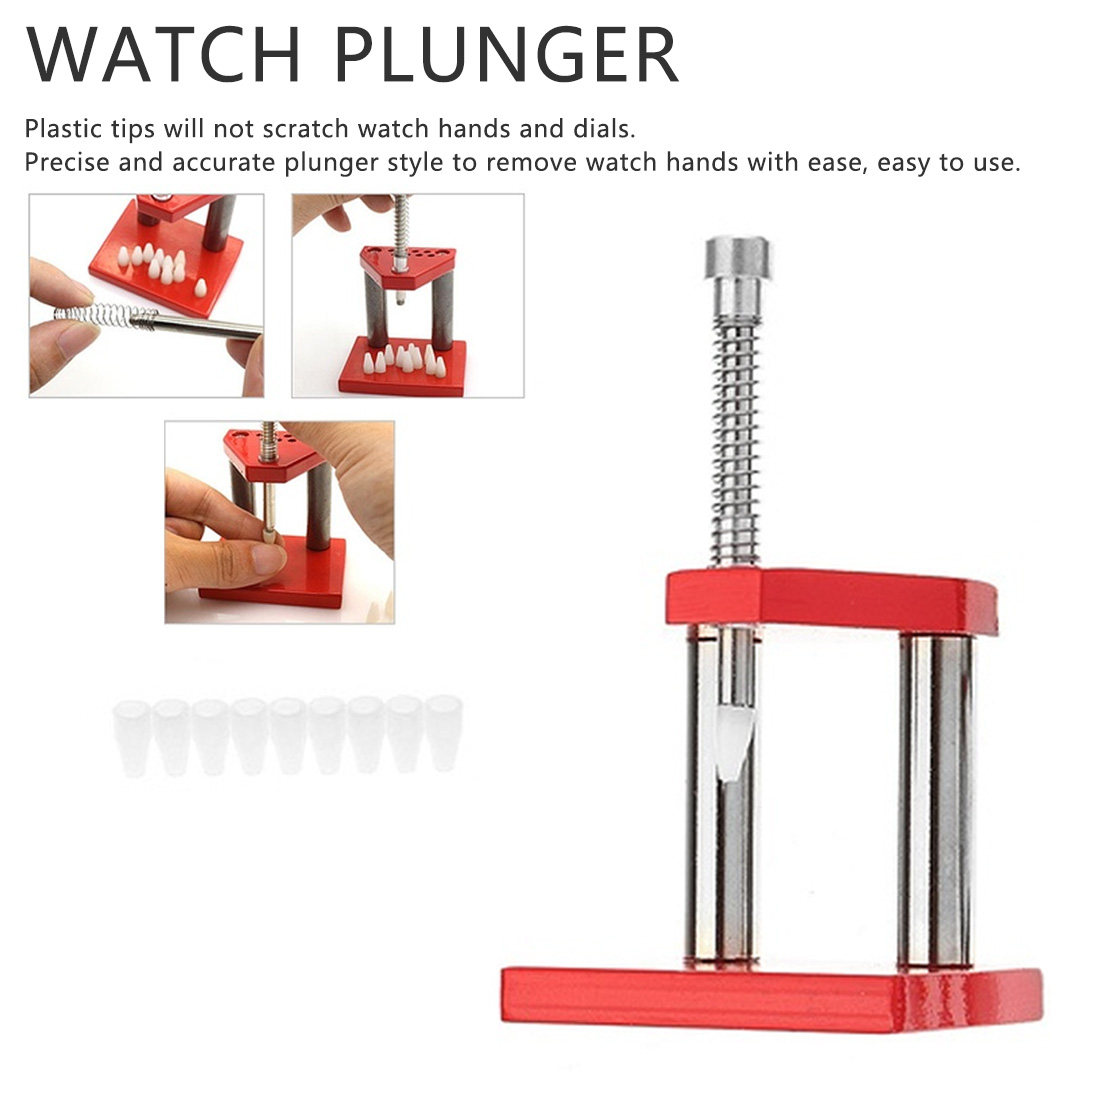 Professional safe Watch Hand Plunger Puller Remover Set Wristwatch Repair Tool watch parts tool for watchmaker Watch Tool Kit